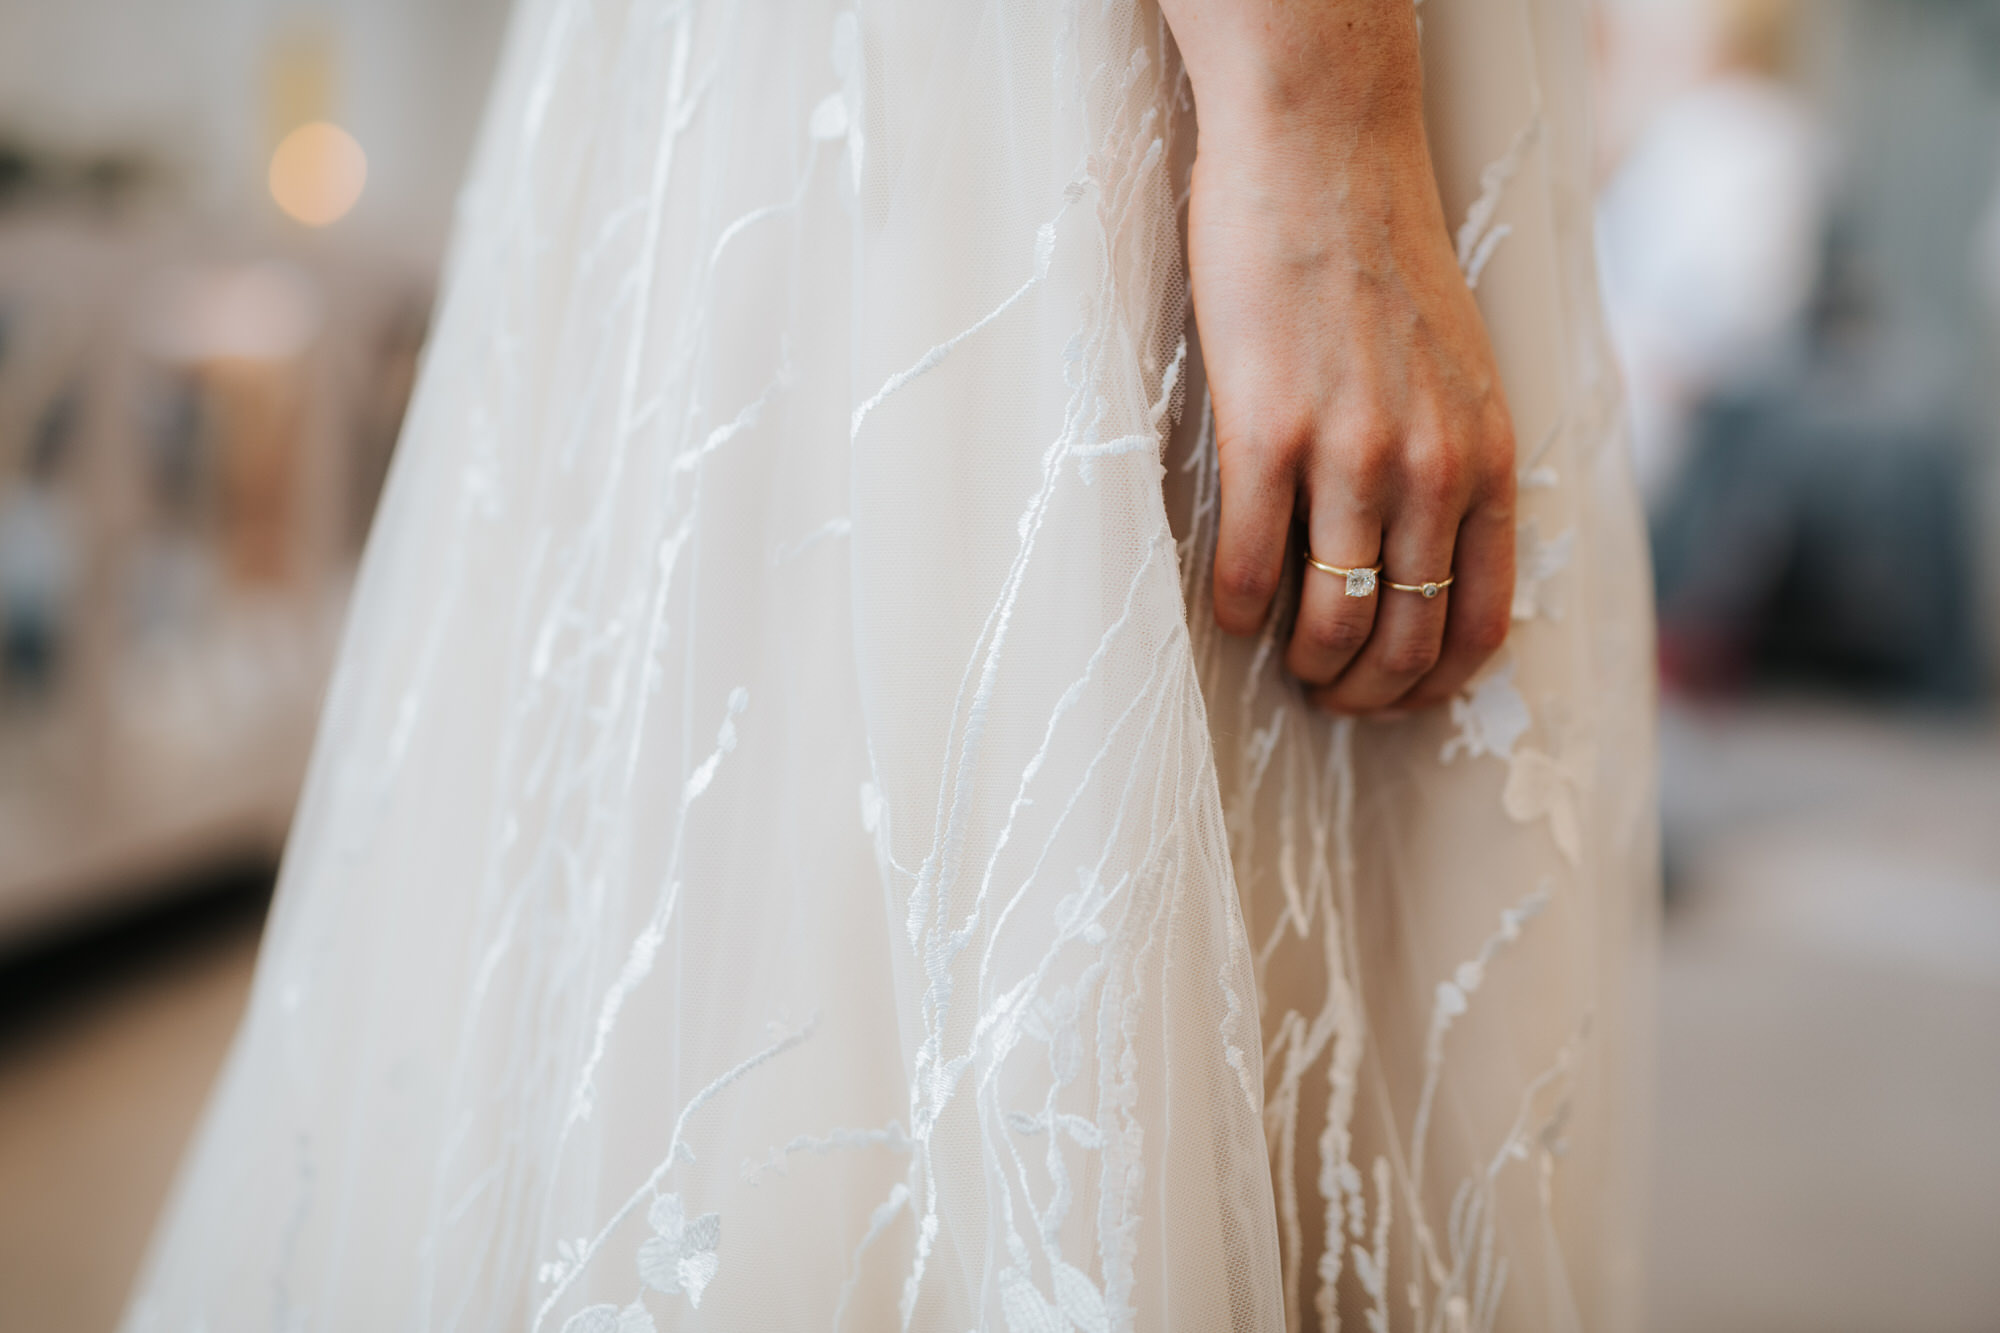 Close up of Bride's hand on her dress